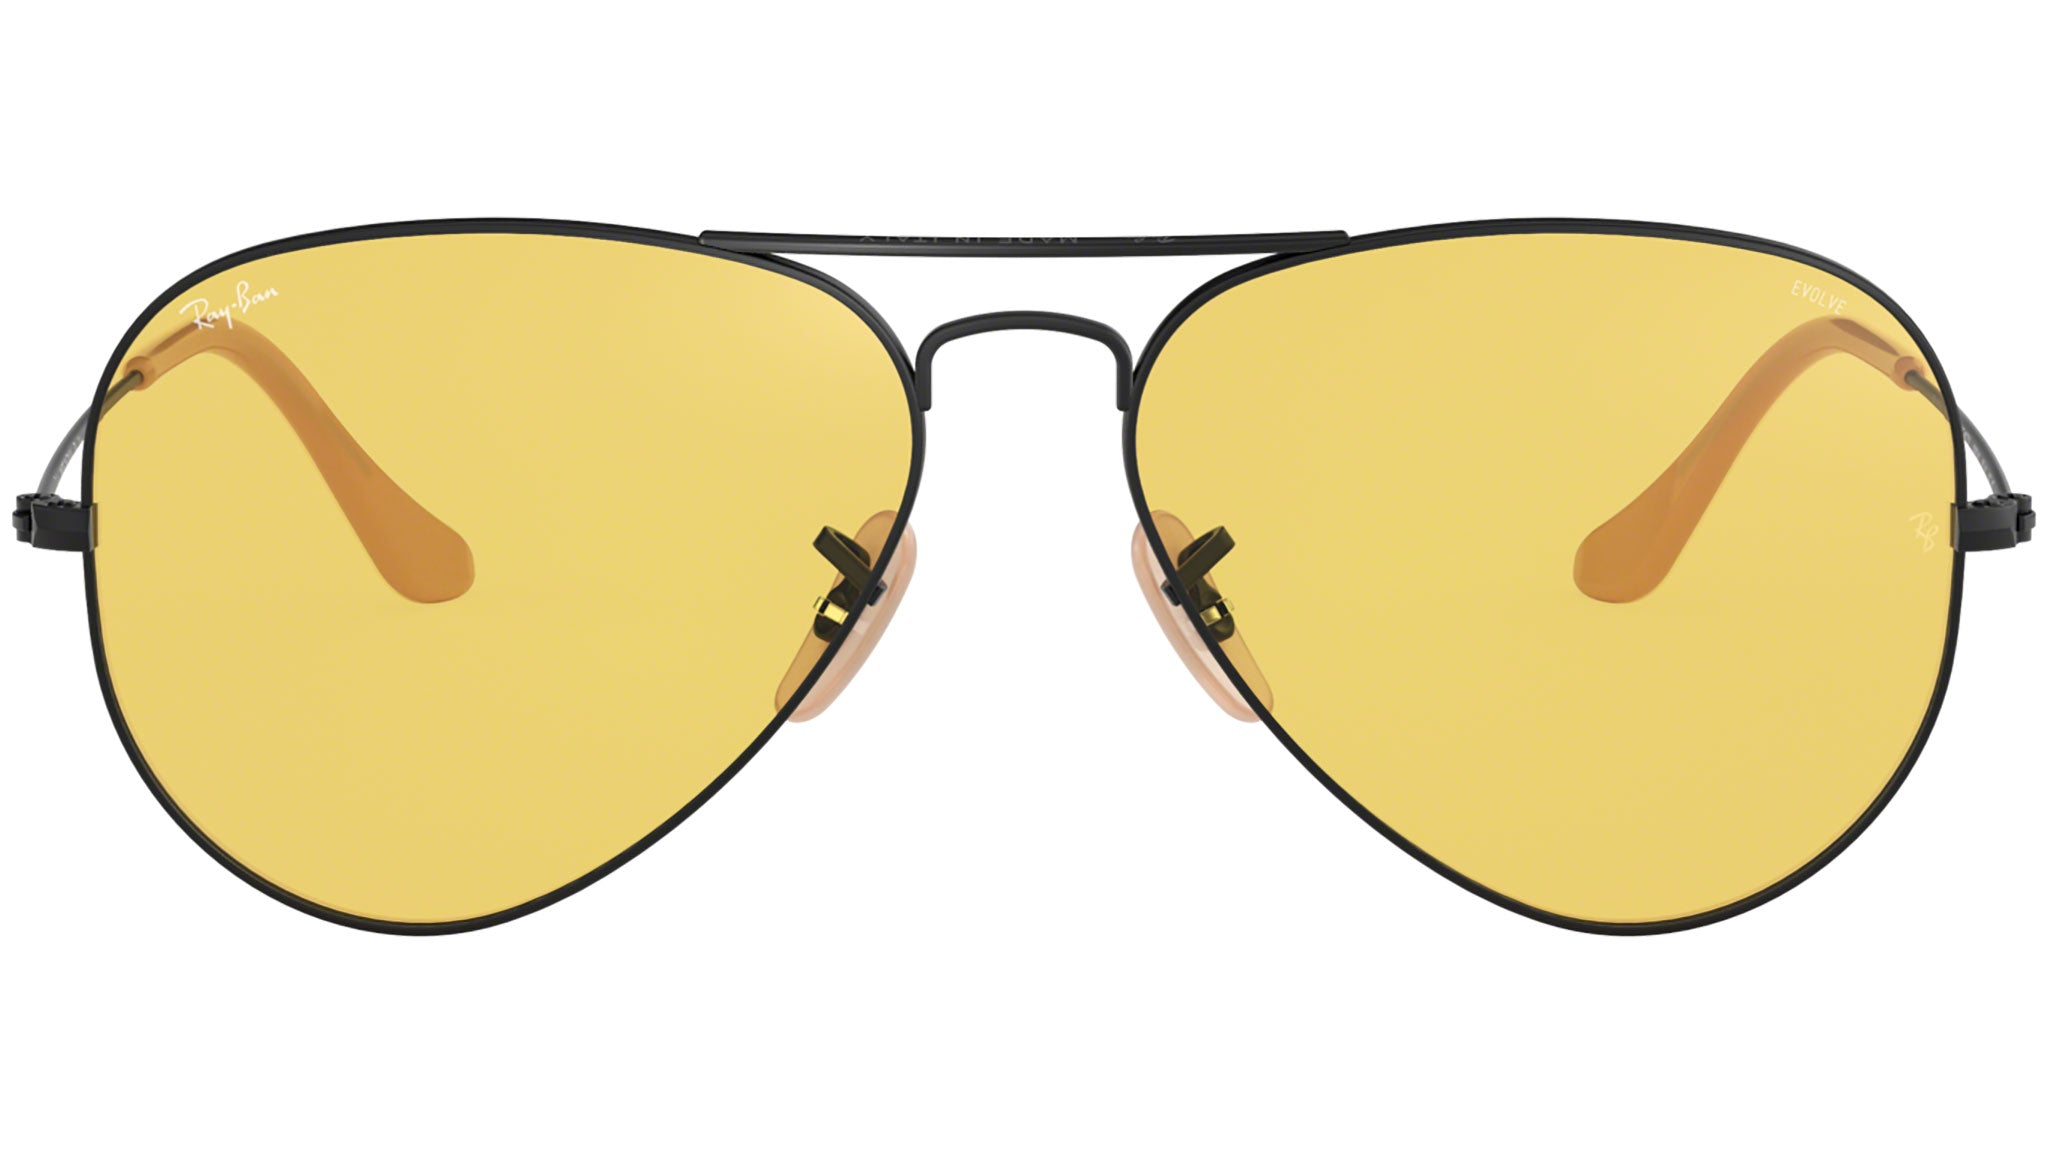 Aviator Washed Evolve RB3025 black and yellow